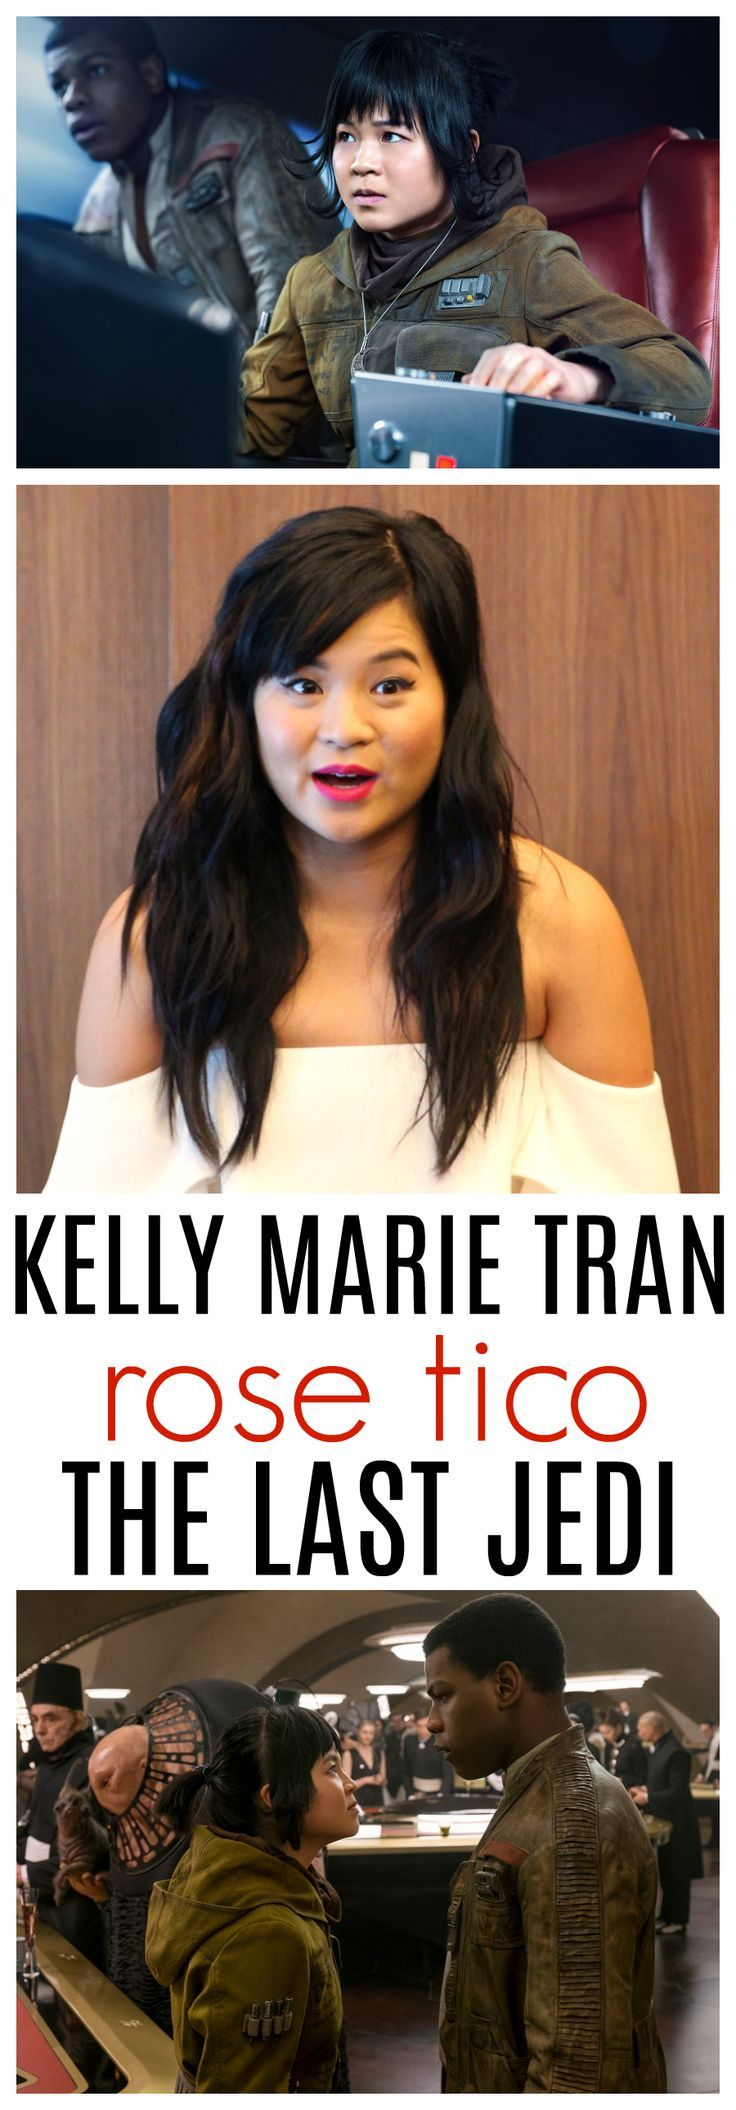 Kelly Marie Tran Interview | Star Wars: The Last Jedi, How Rose Tico Is